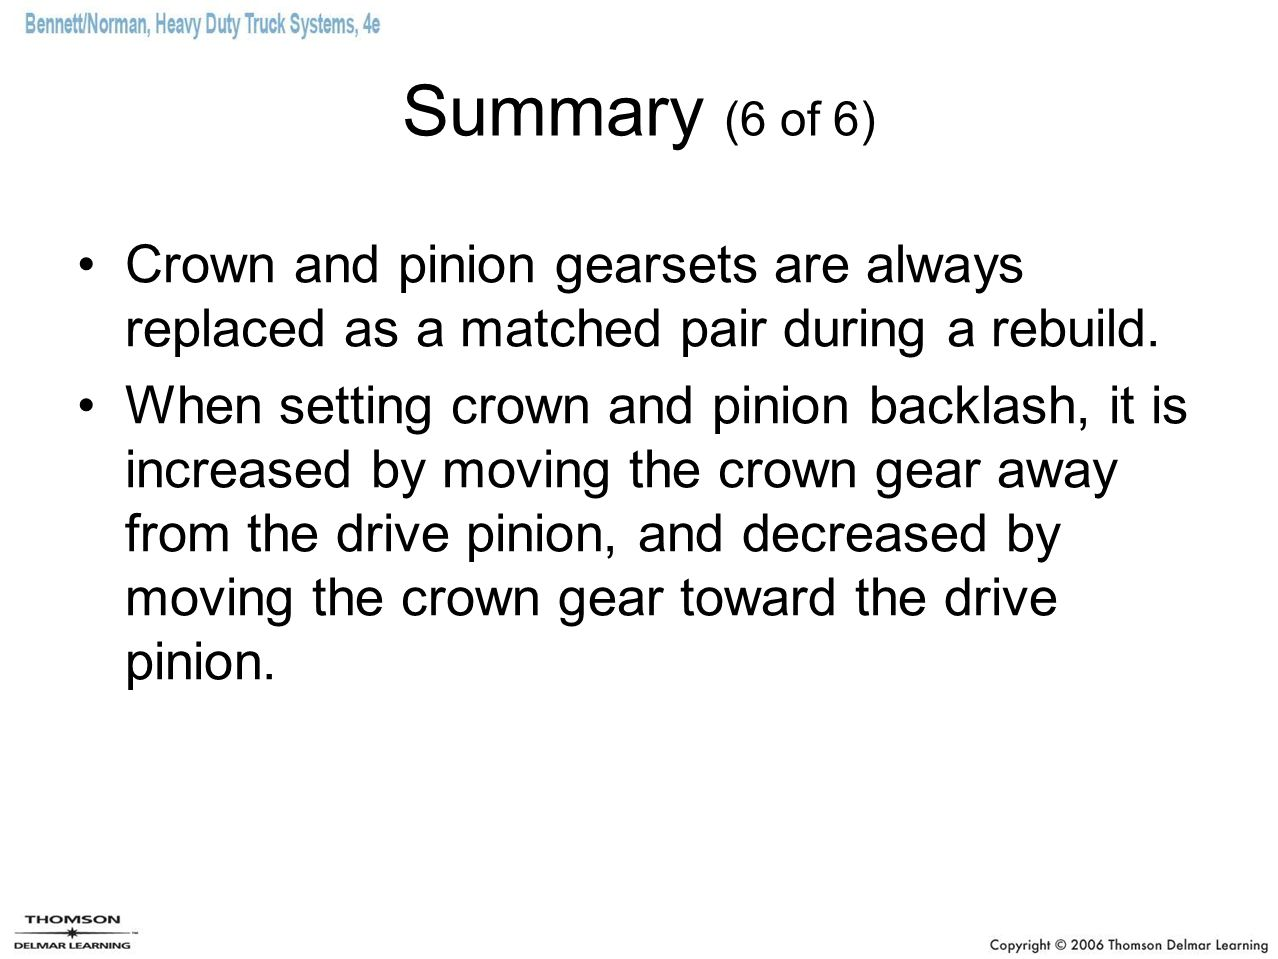 Summary (6 of 6) Crown and pinion gearsets are always replaced as a matched pair during a rebuild. When setting crown and pinion backlash, it is incre